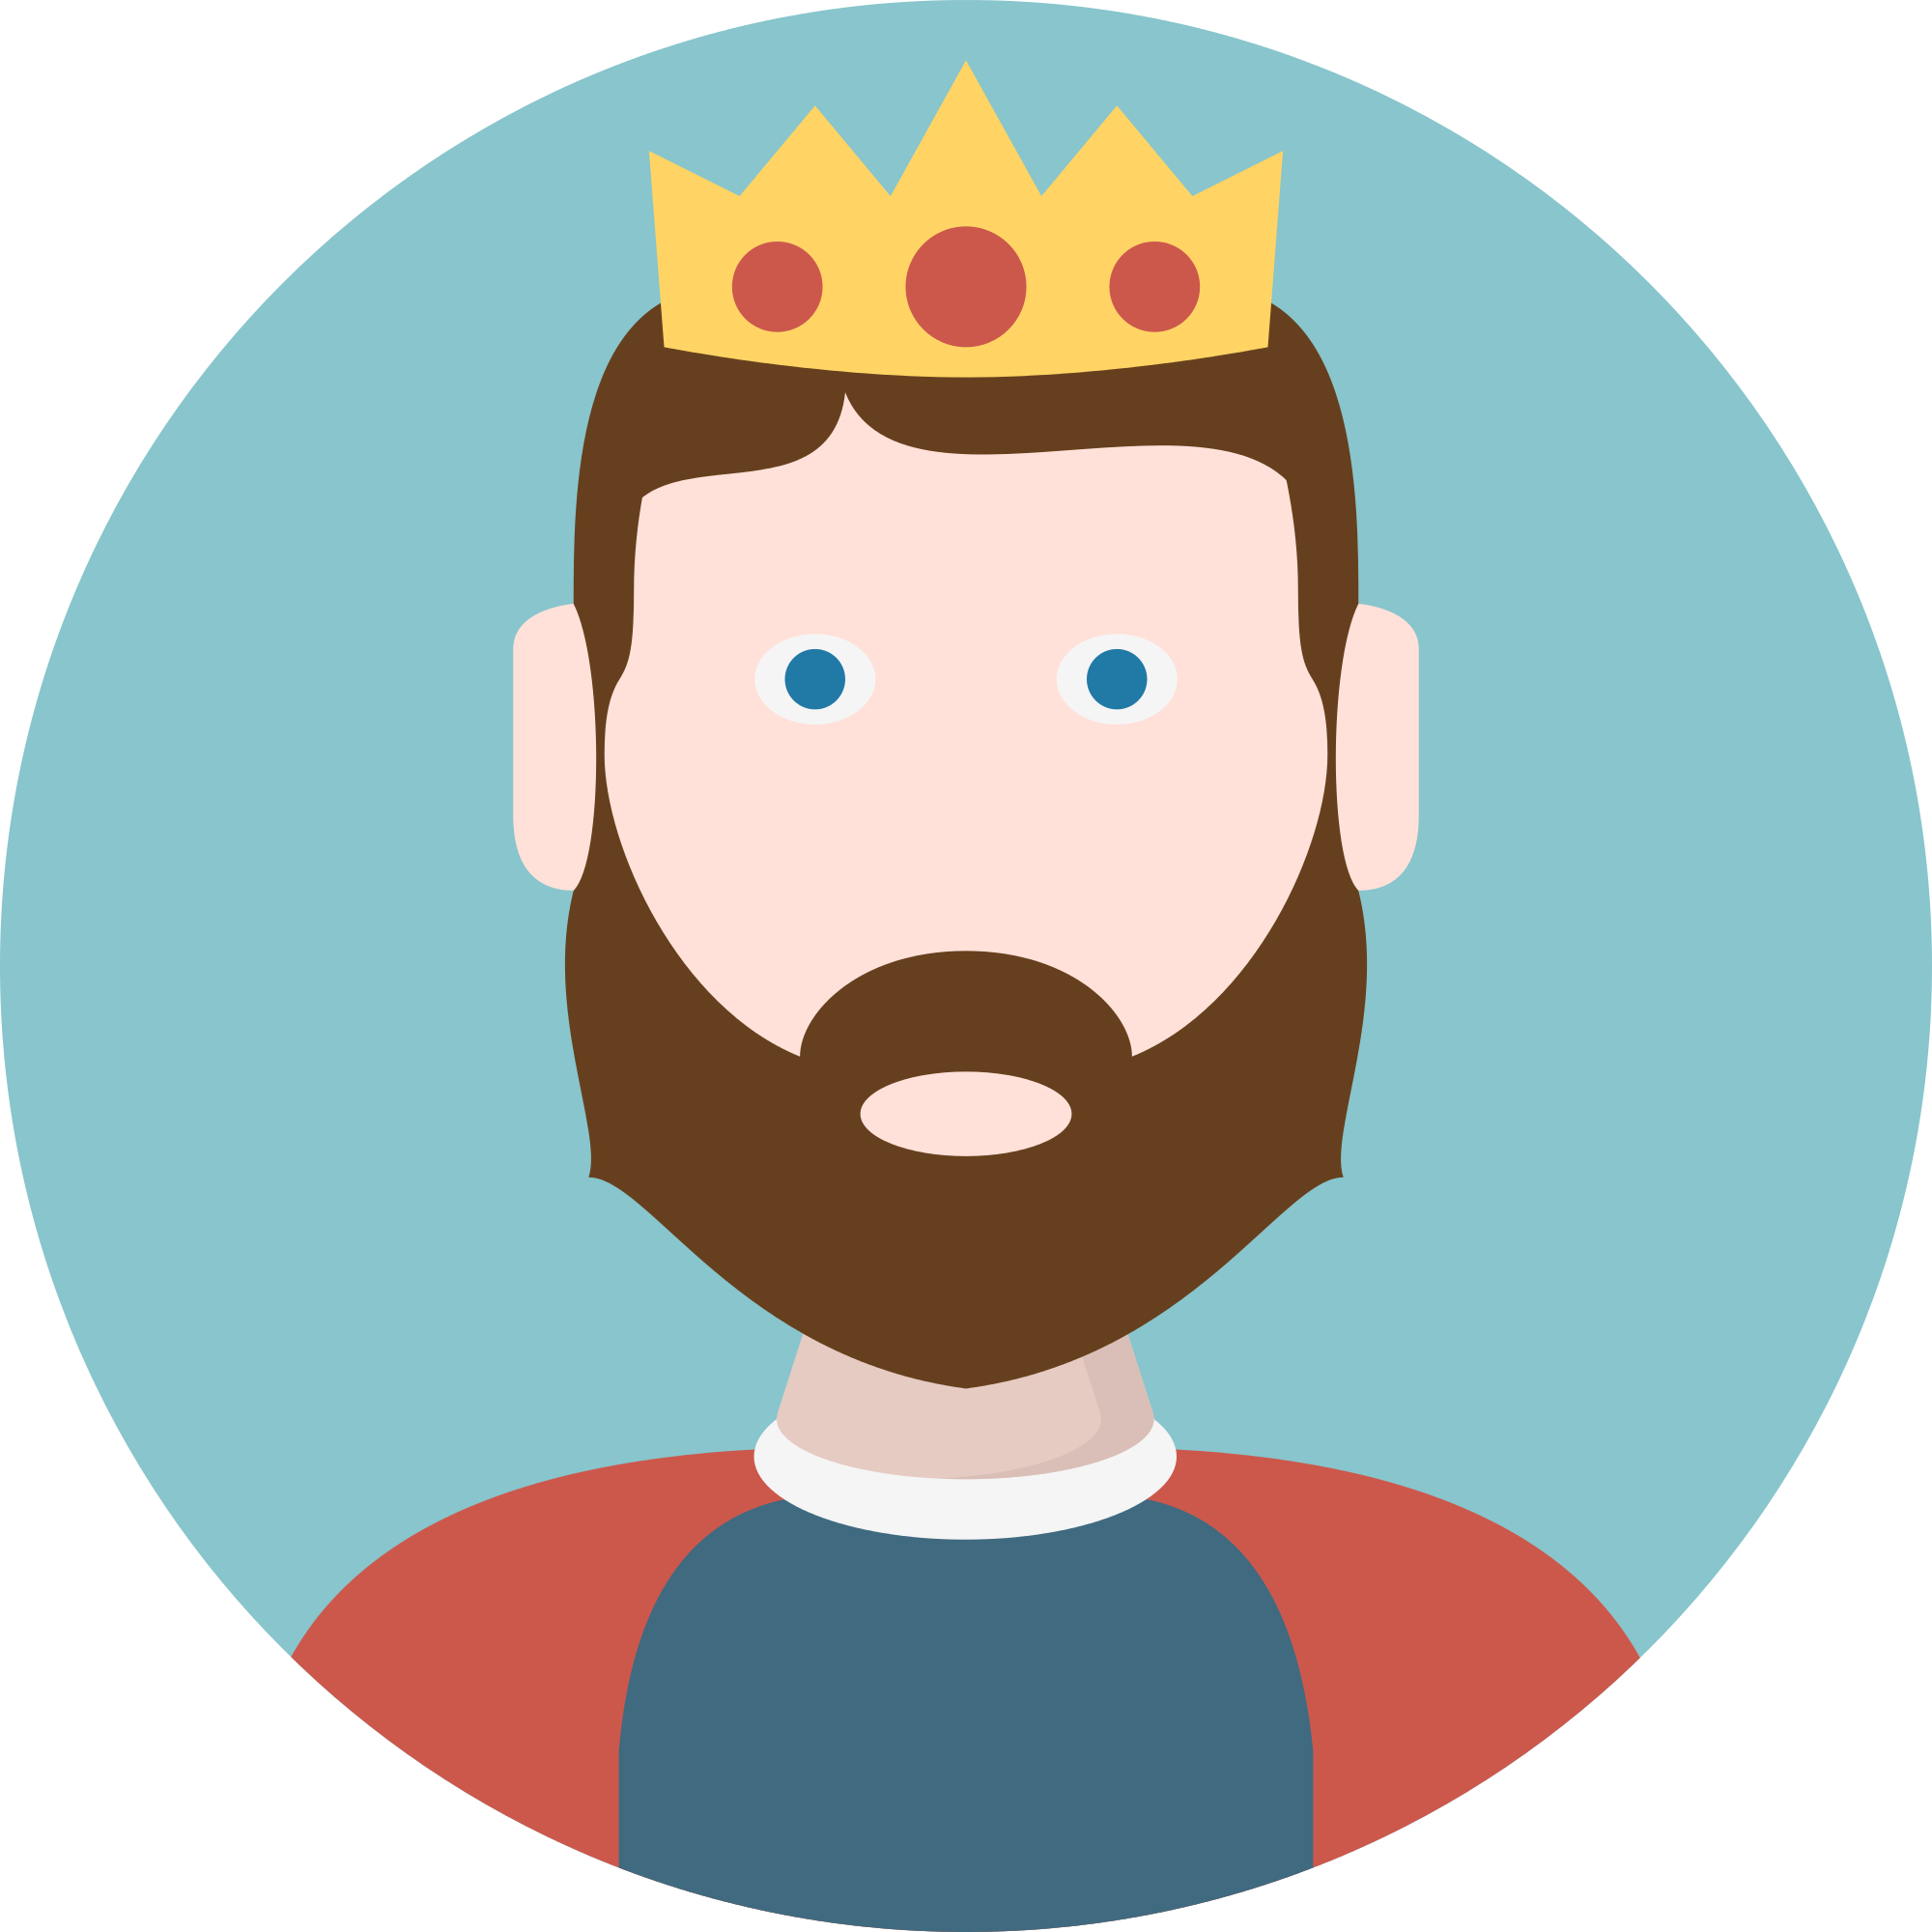 King clipart head king. File creative tail people